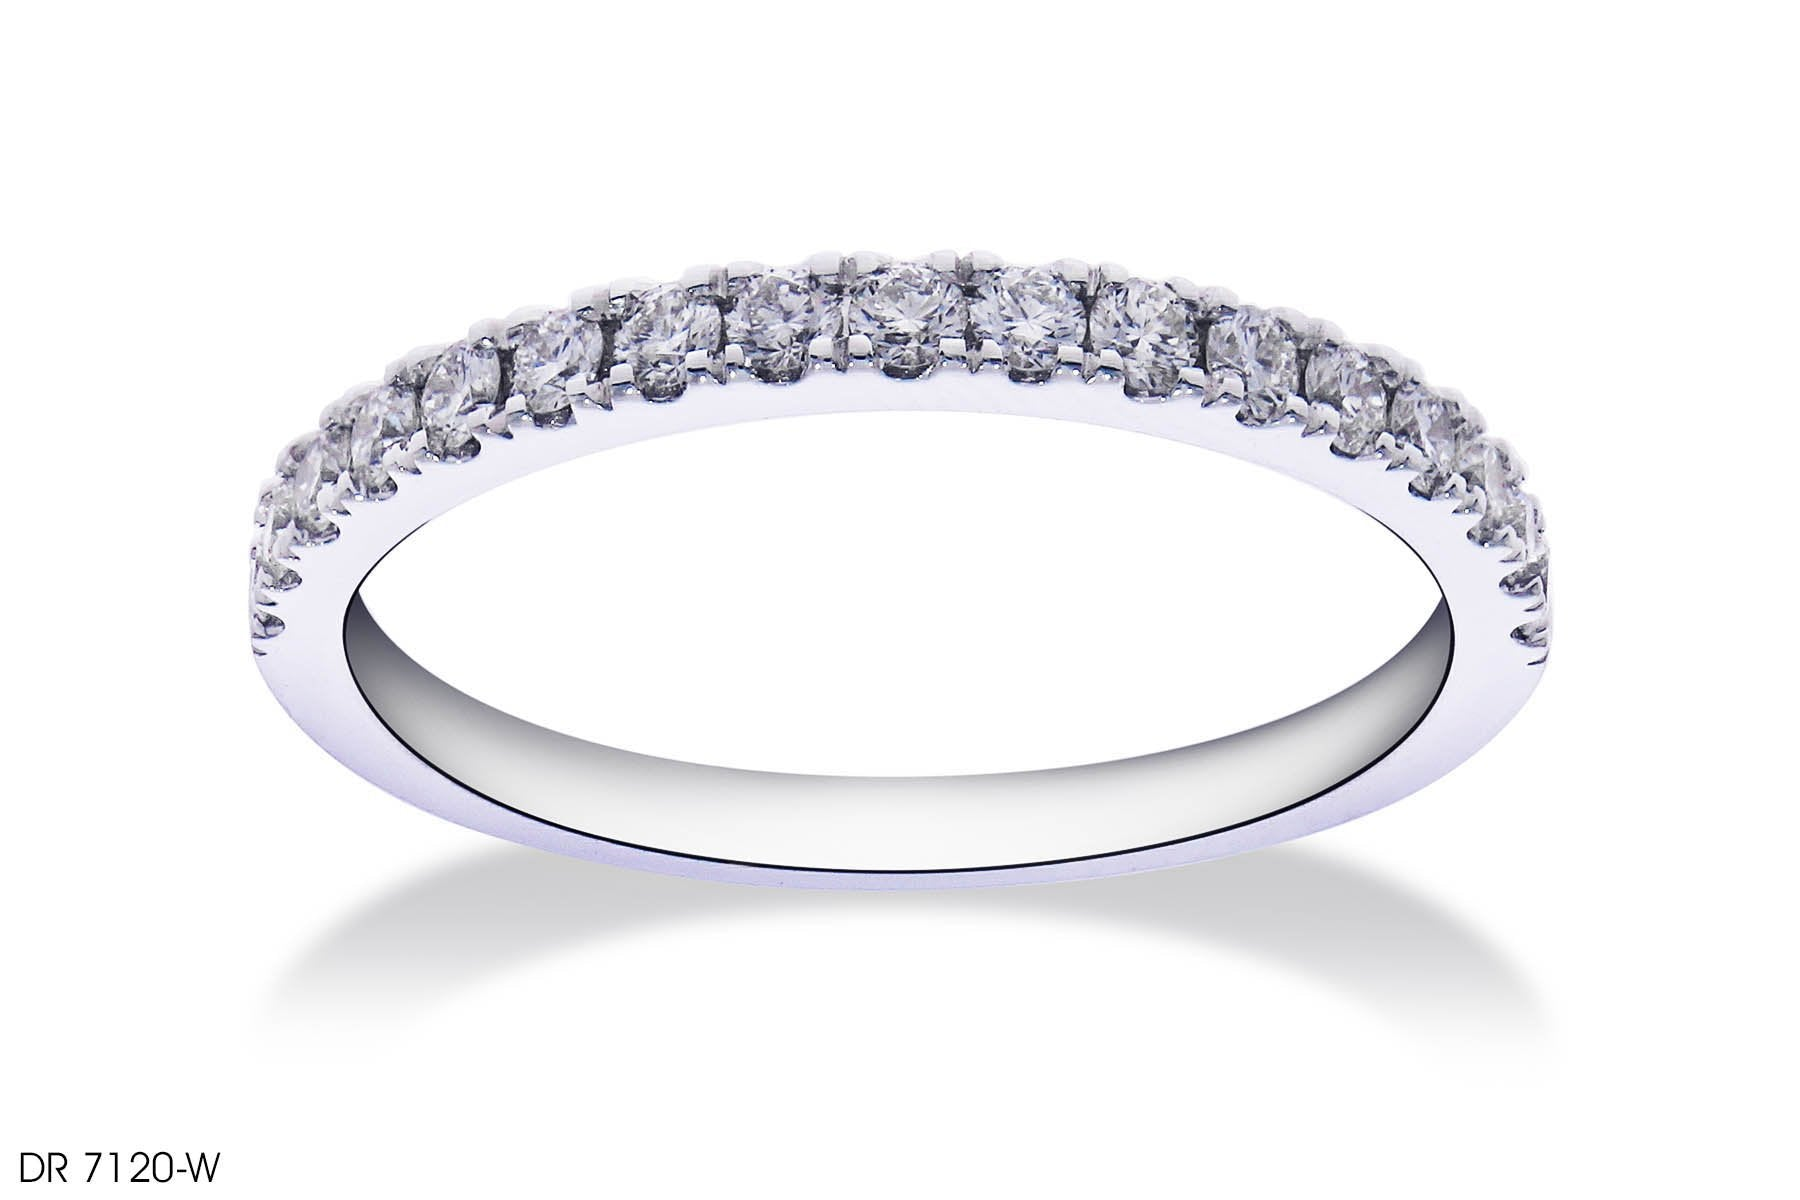 Melee Diamond Wedding Band in 18k White Gold